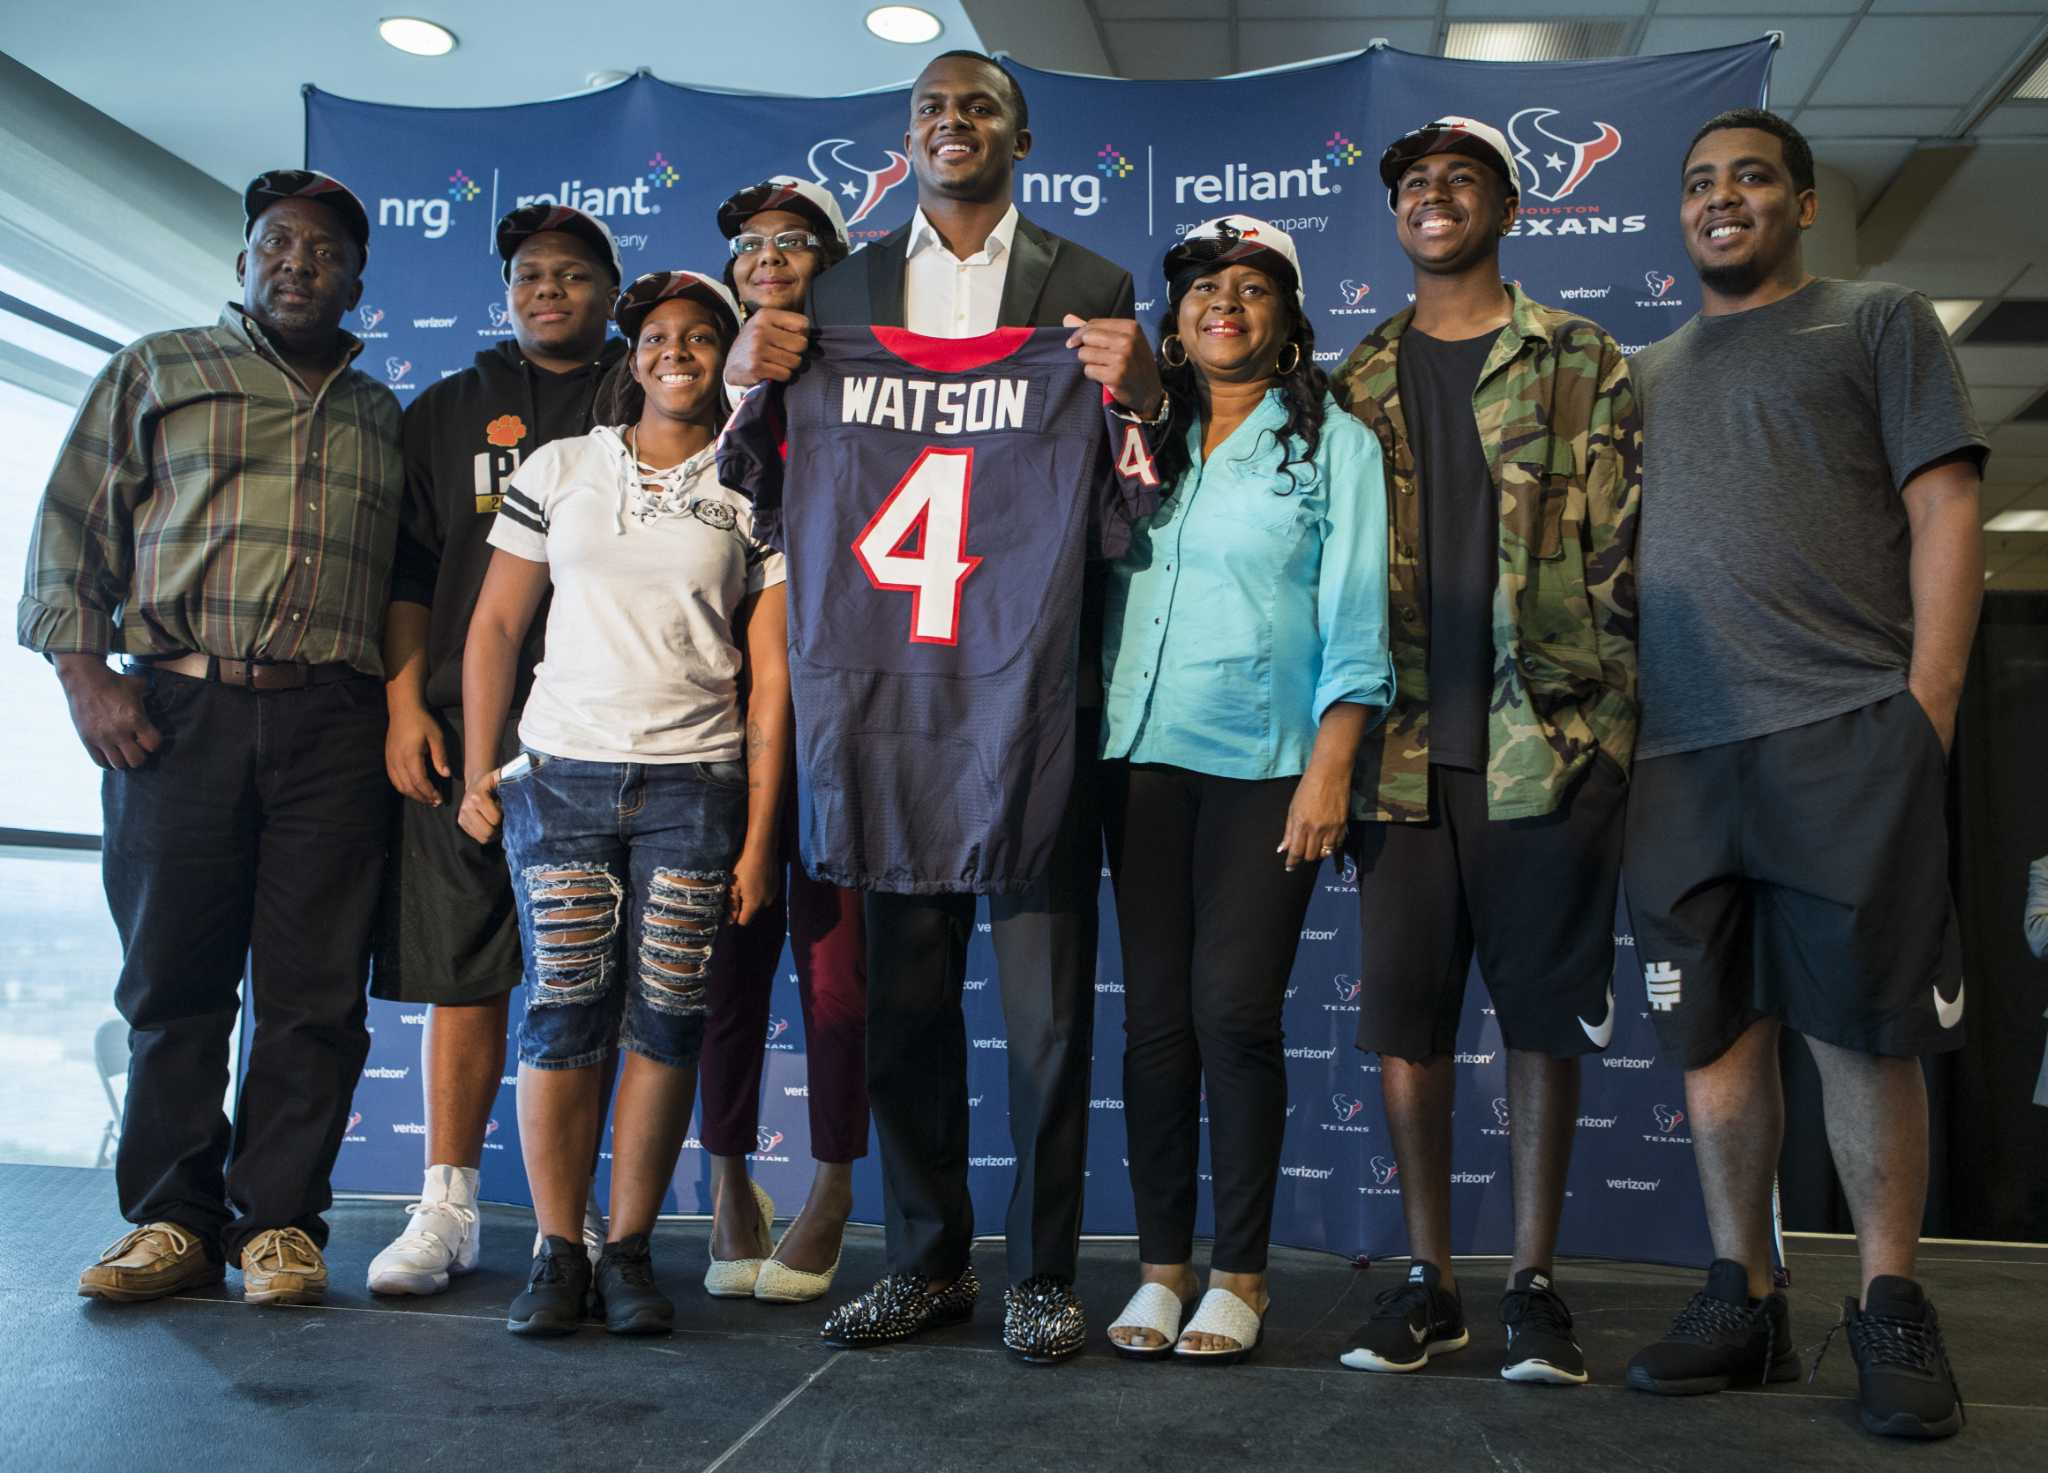 67edc8335d9 Texans top draft pick Deshaun Watson and family keep defying odds - Houston  Chronicle